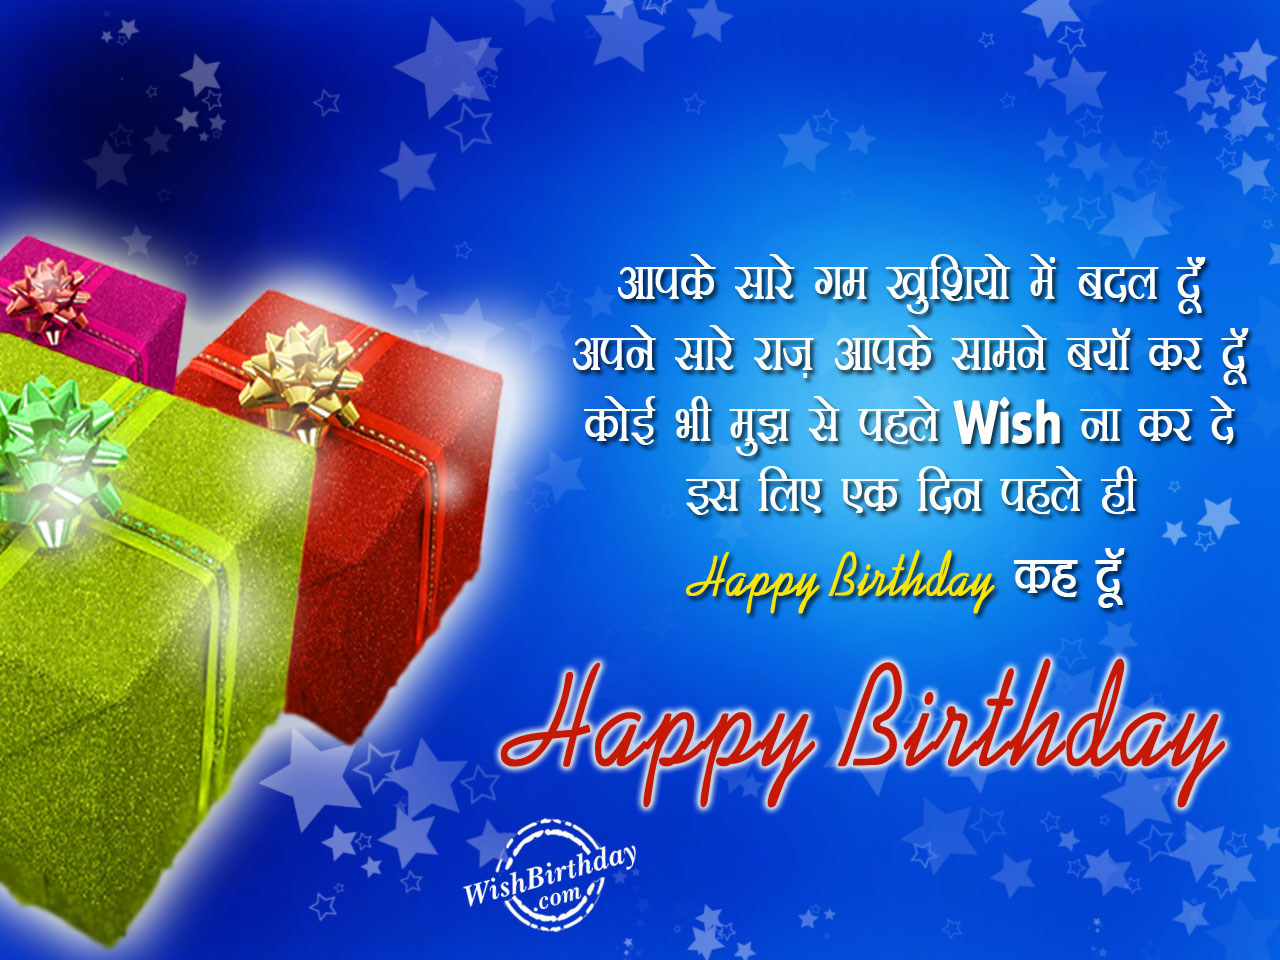 Birthday Wishes In Hindi - Birthday Images, Pictures